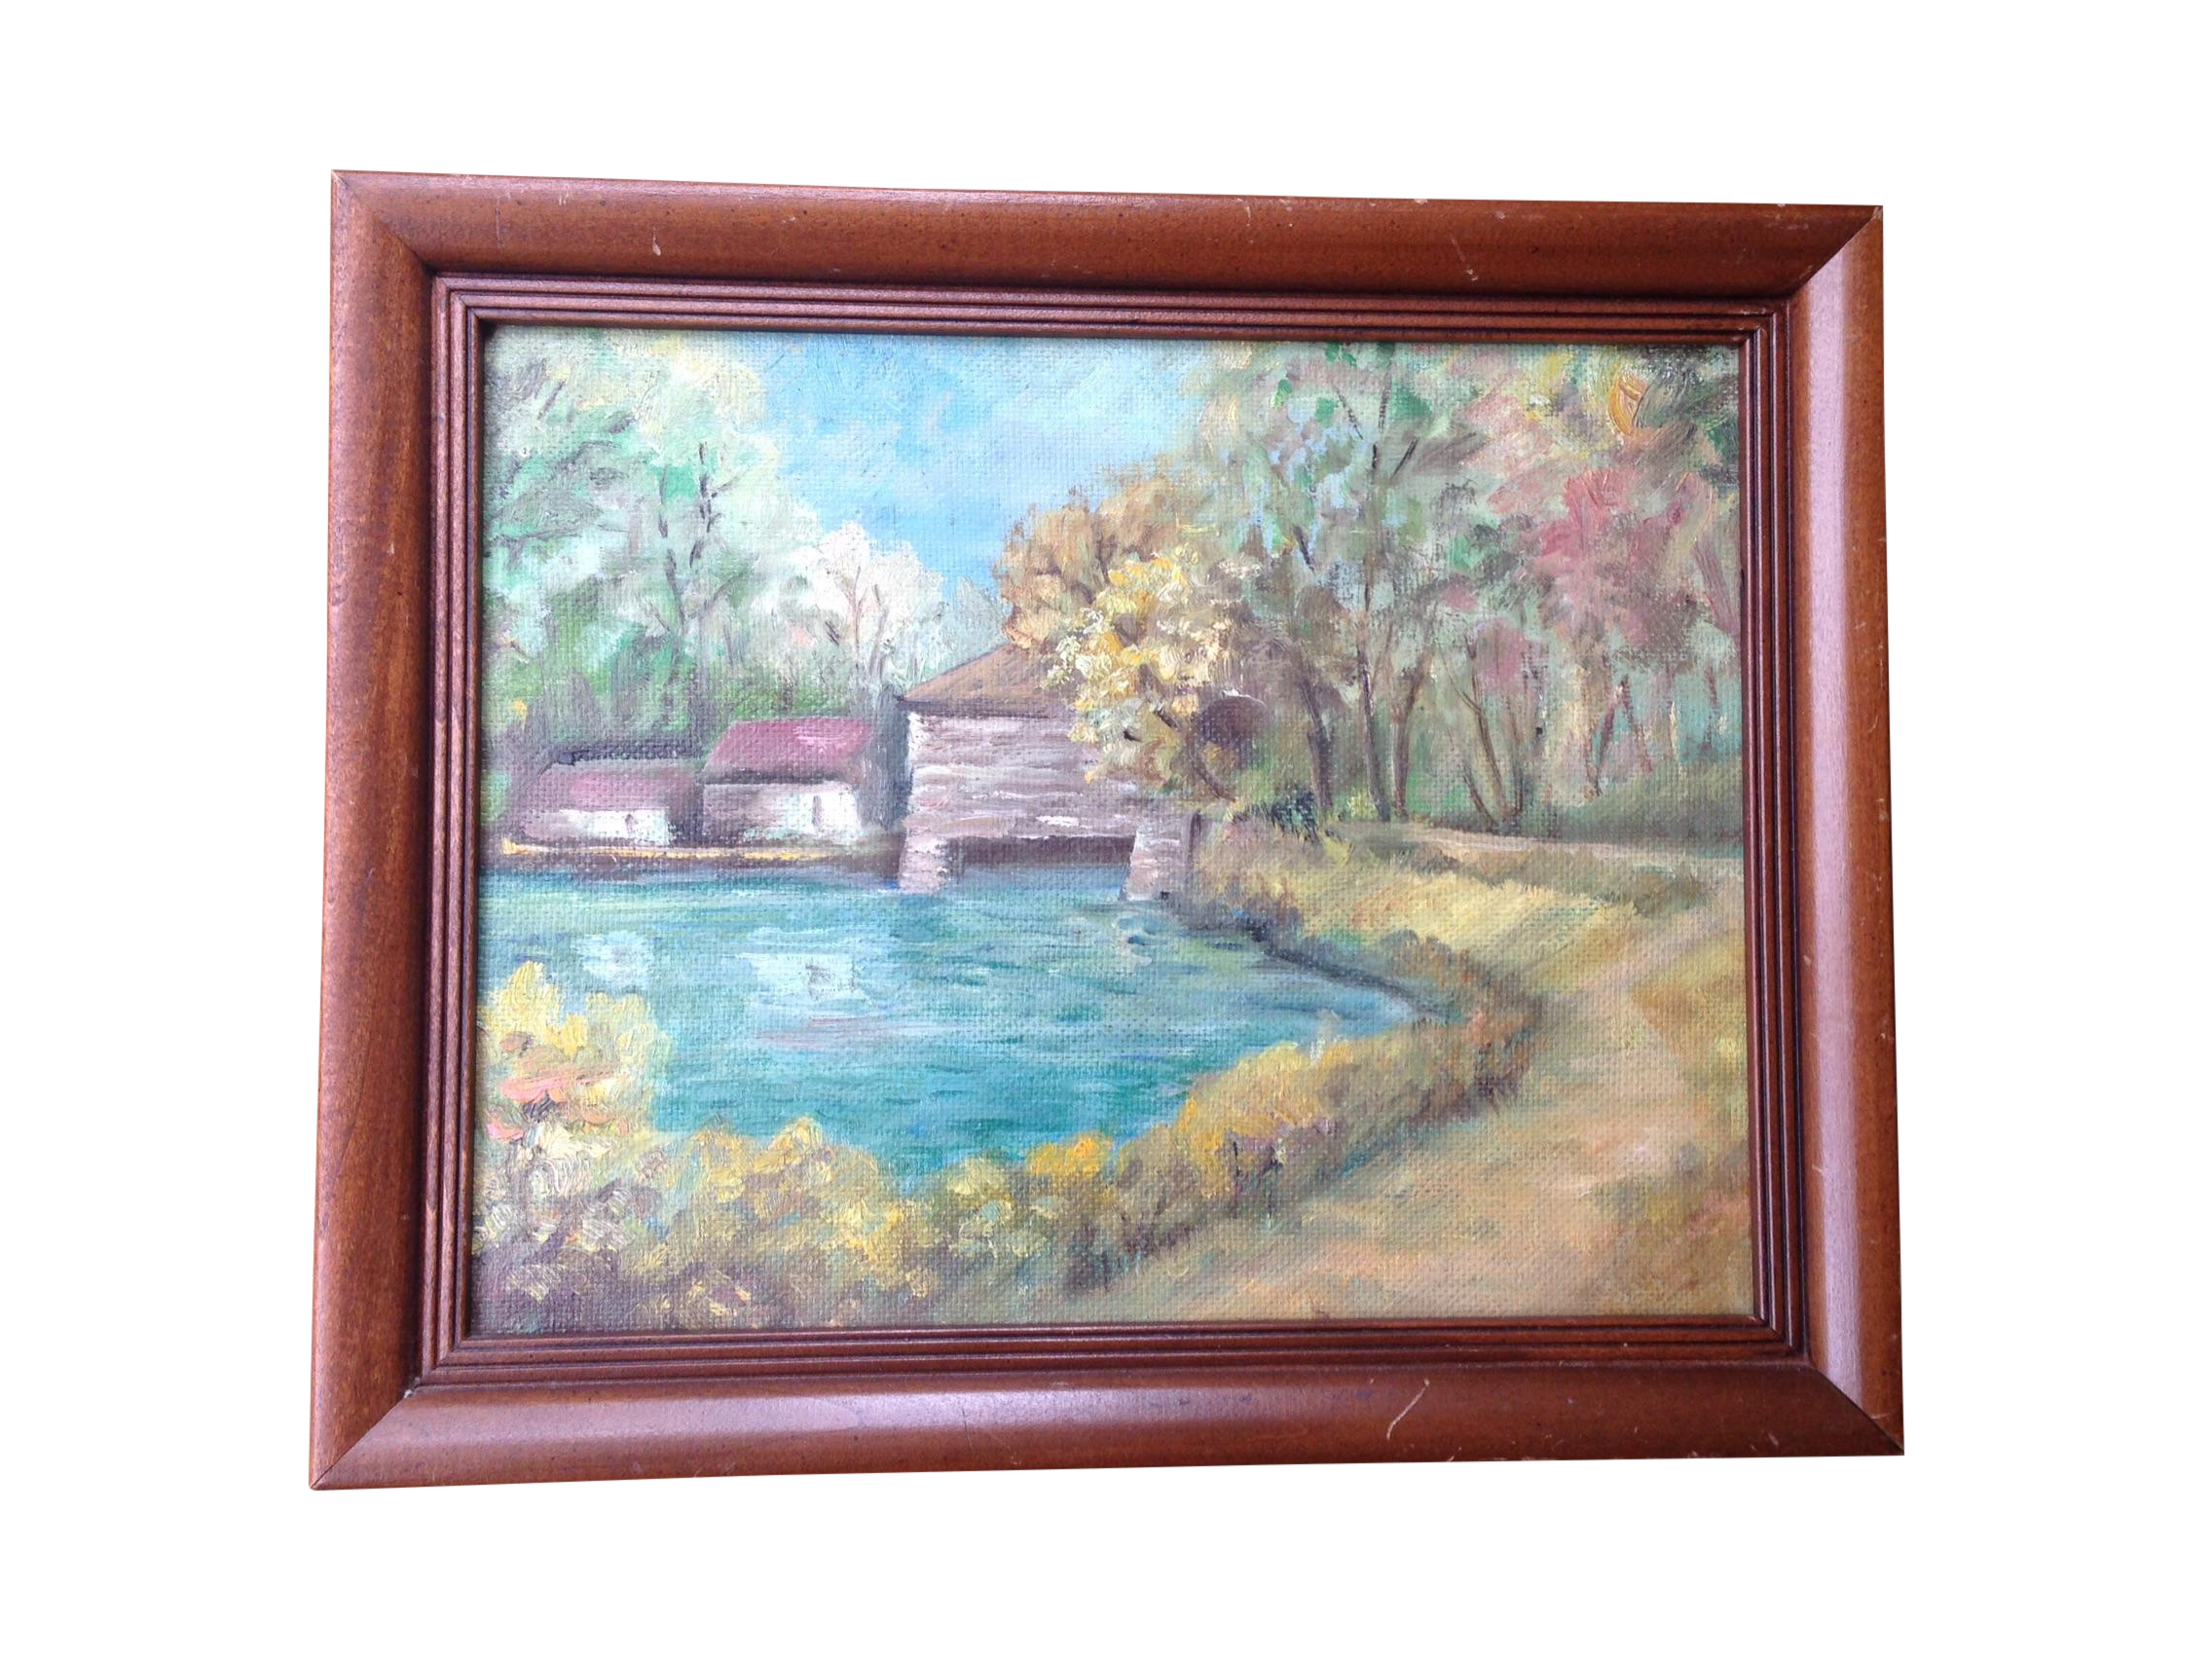 Landscaping drawing vintage. Country landscape oil painting